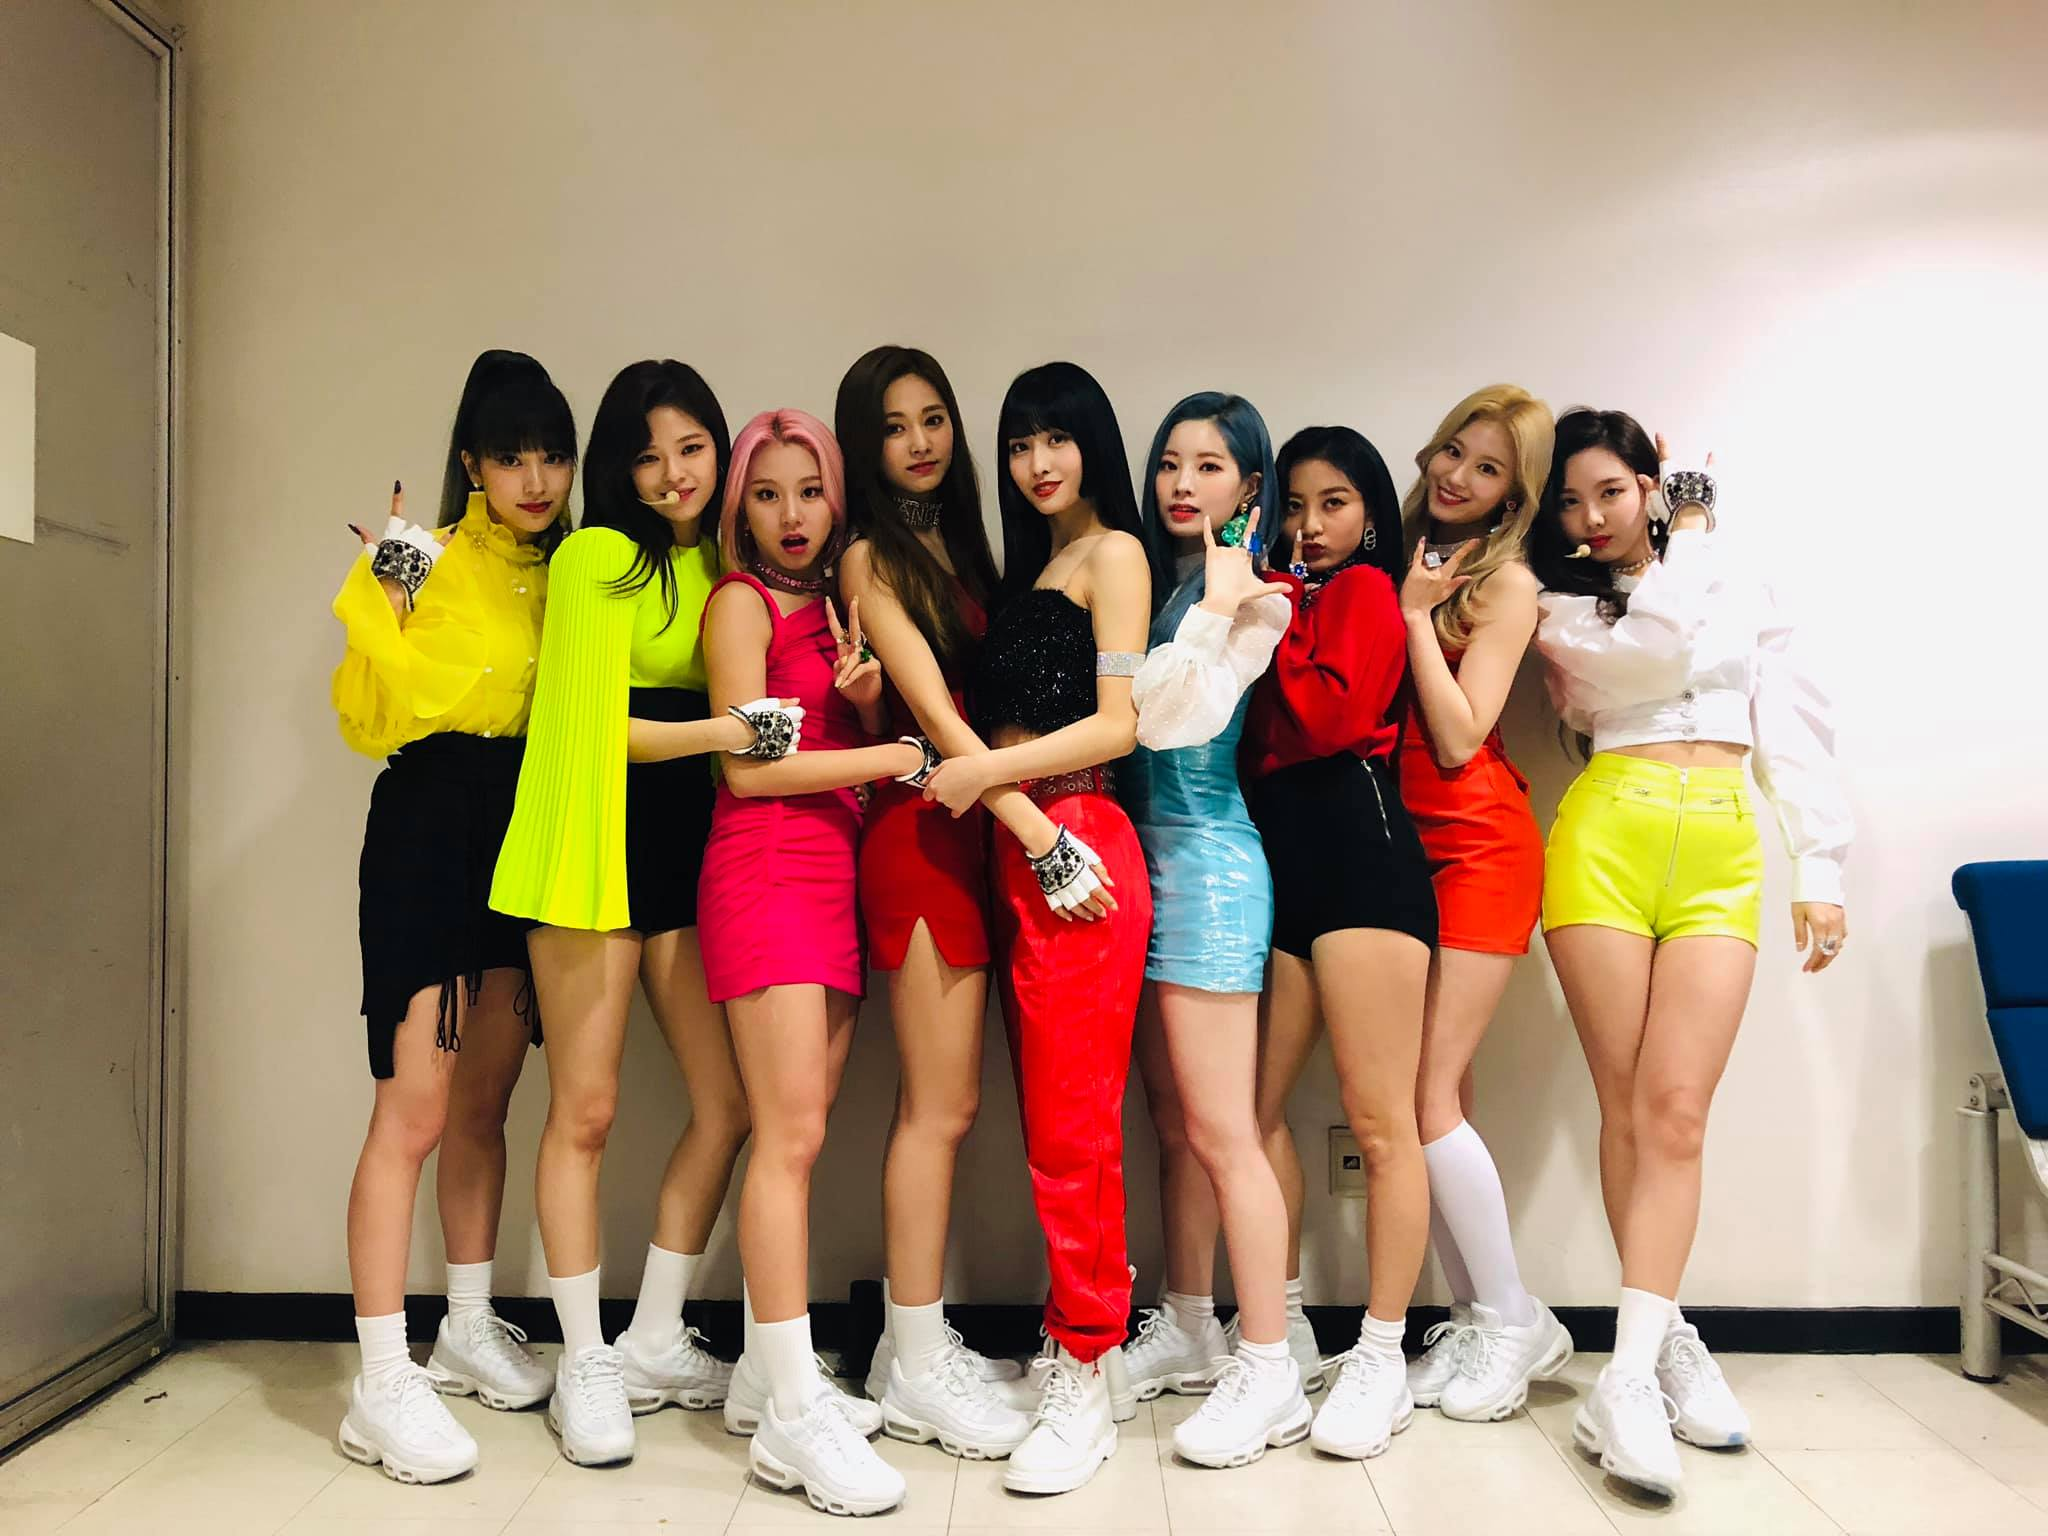 twice upcoming concerts in singapore in 2019